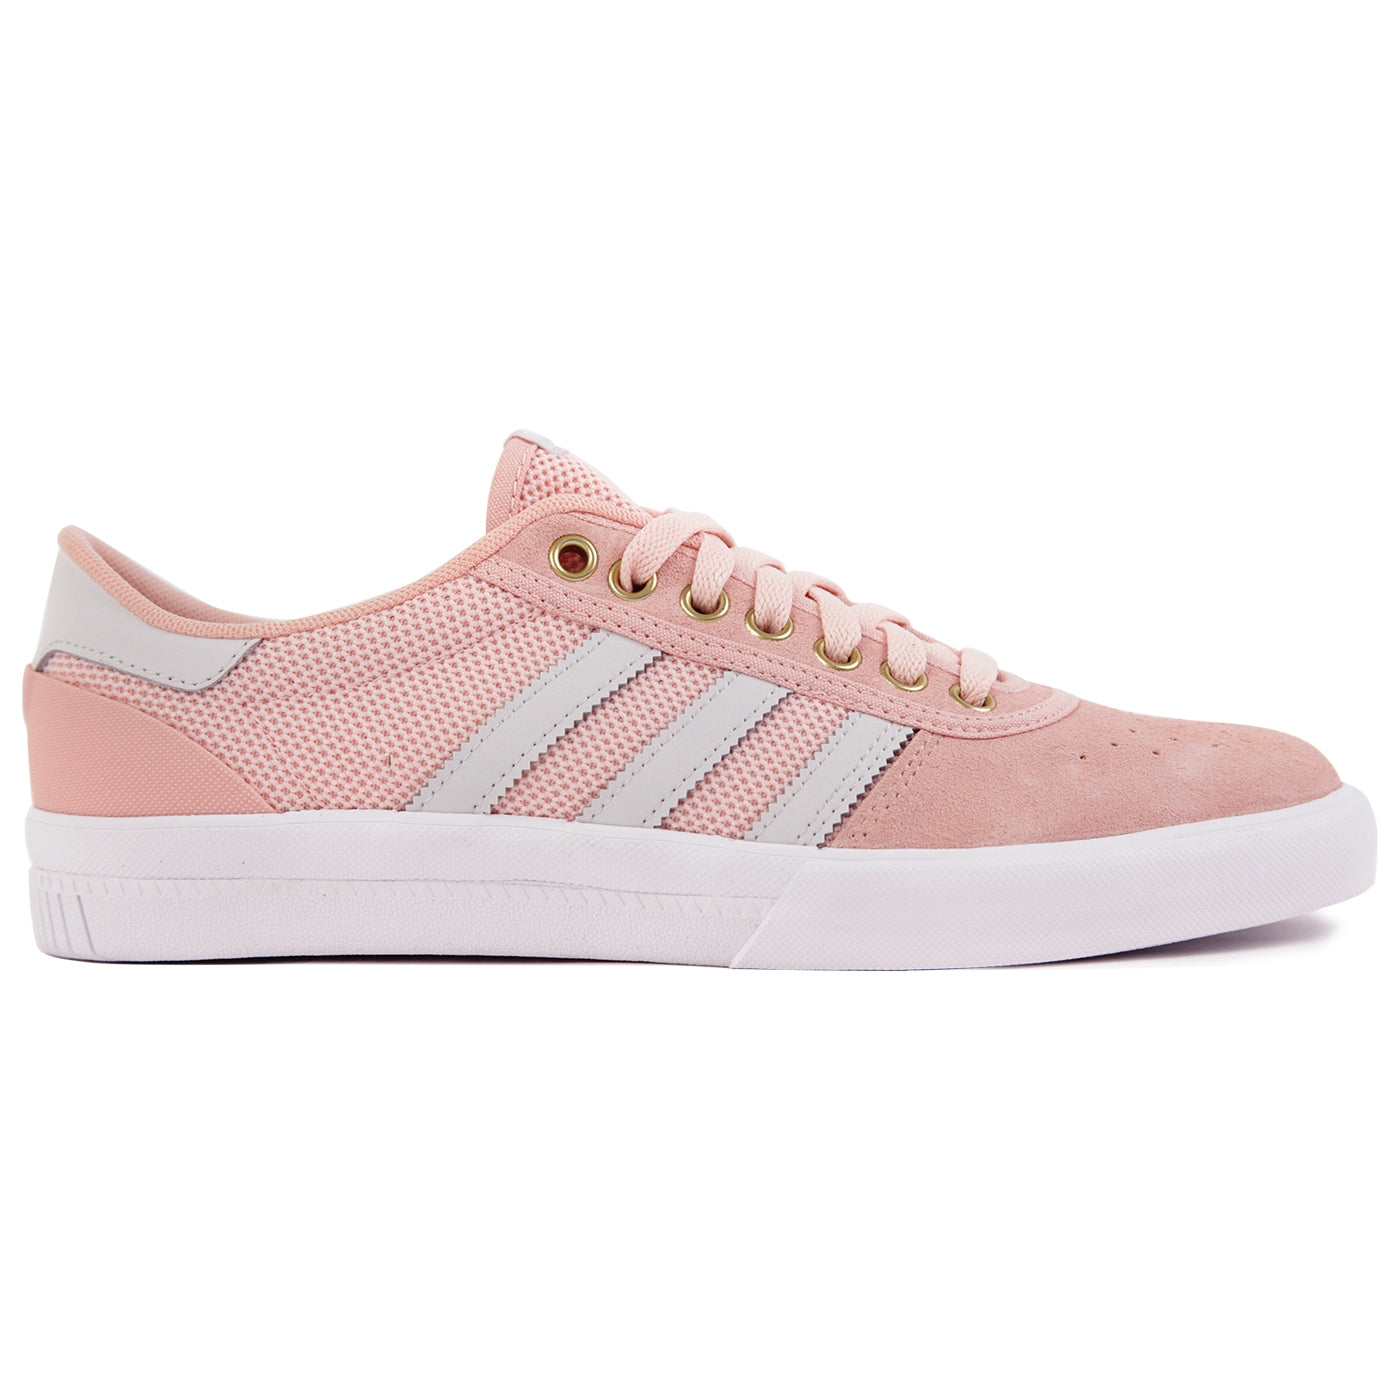 the latest 73aa4 c1fa9 Adidas Lucas Premiere Shoes - Vapour Pink   Grey   Footwear White